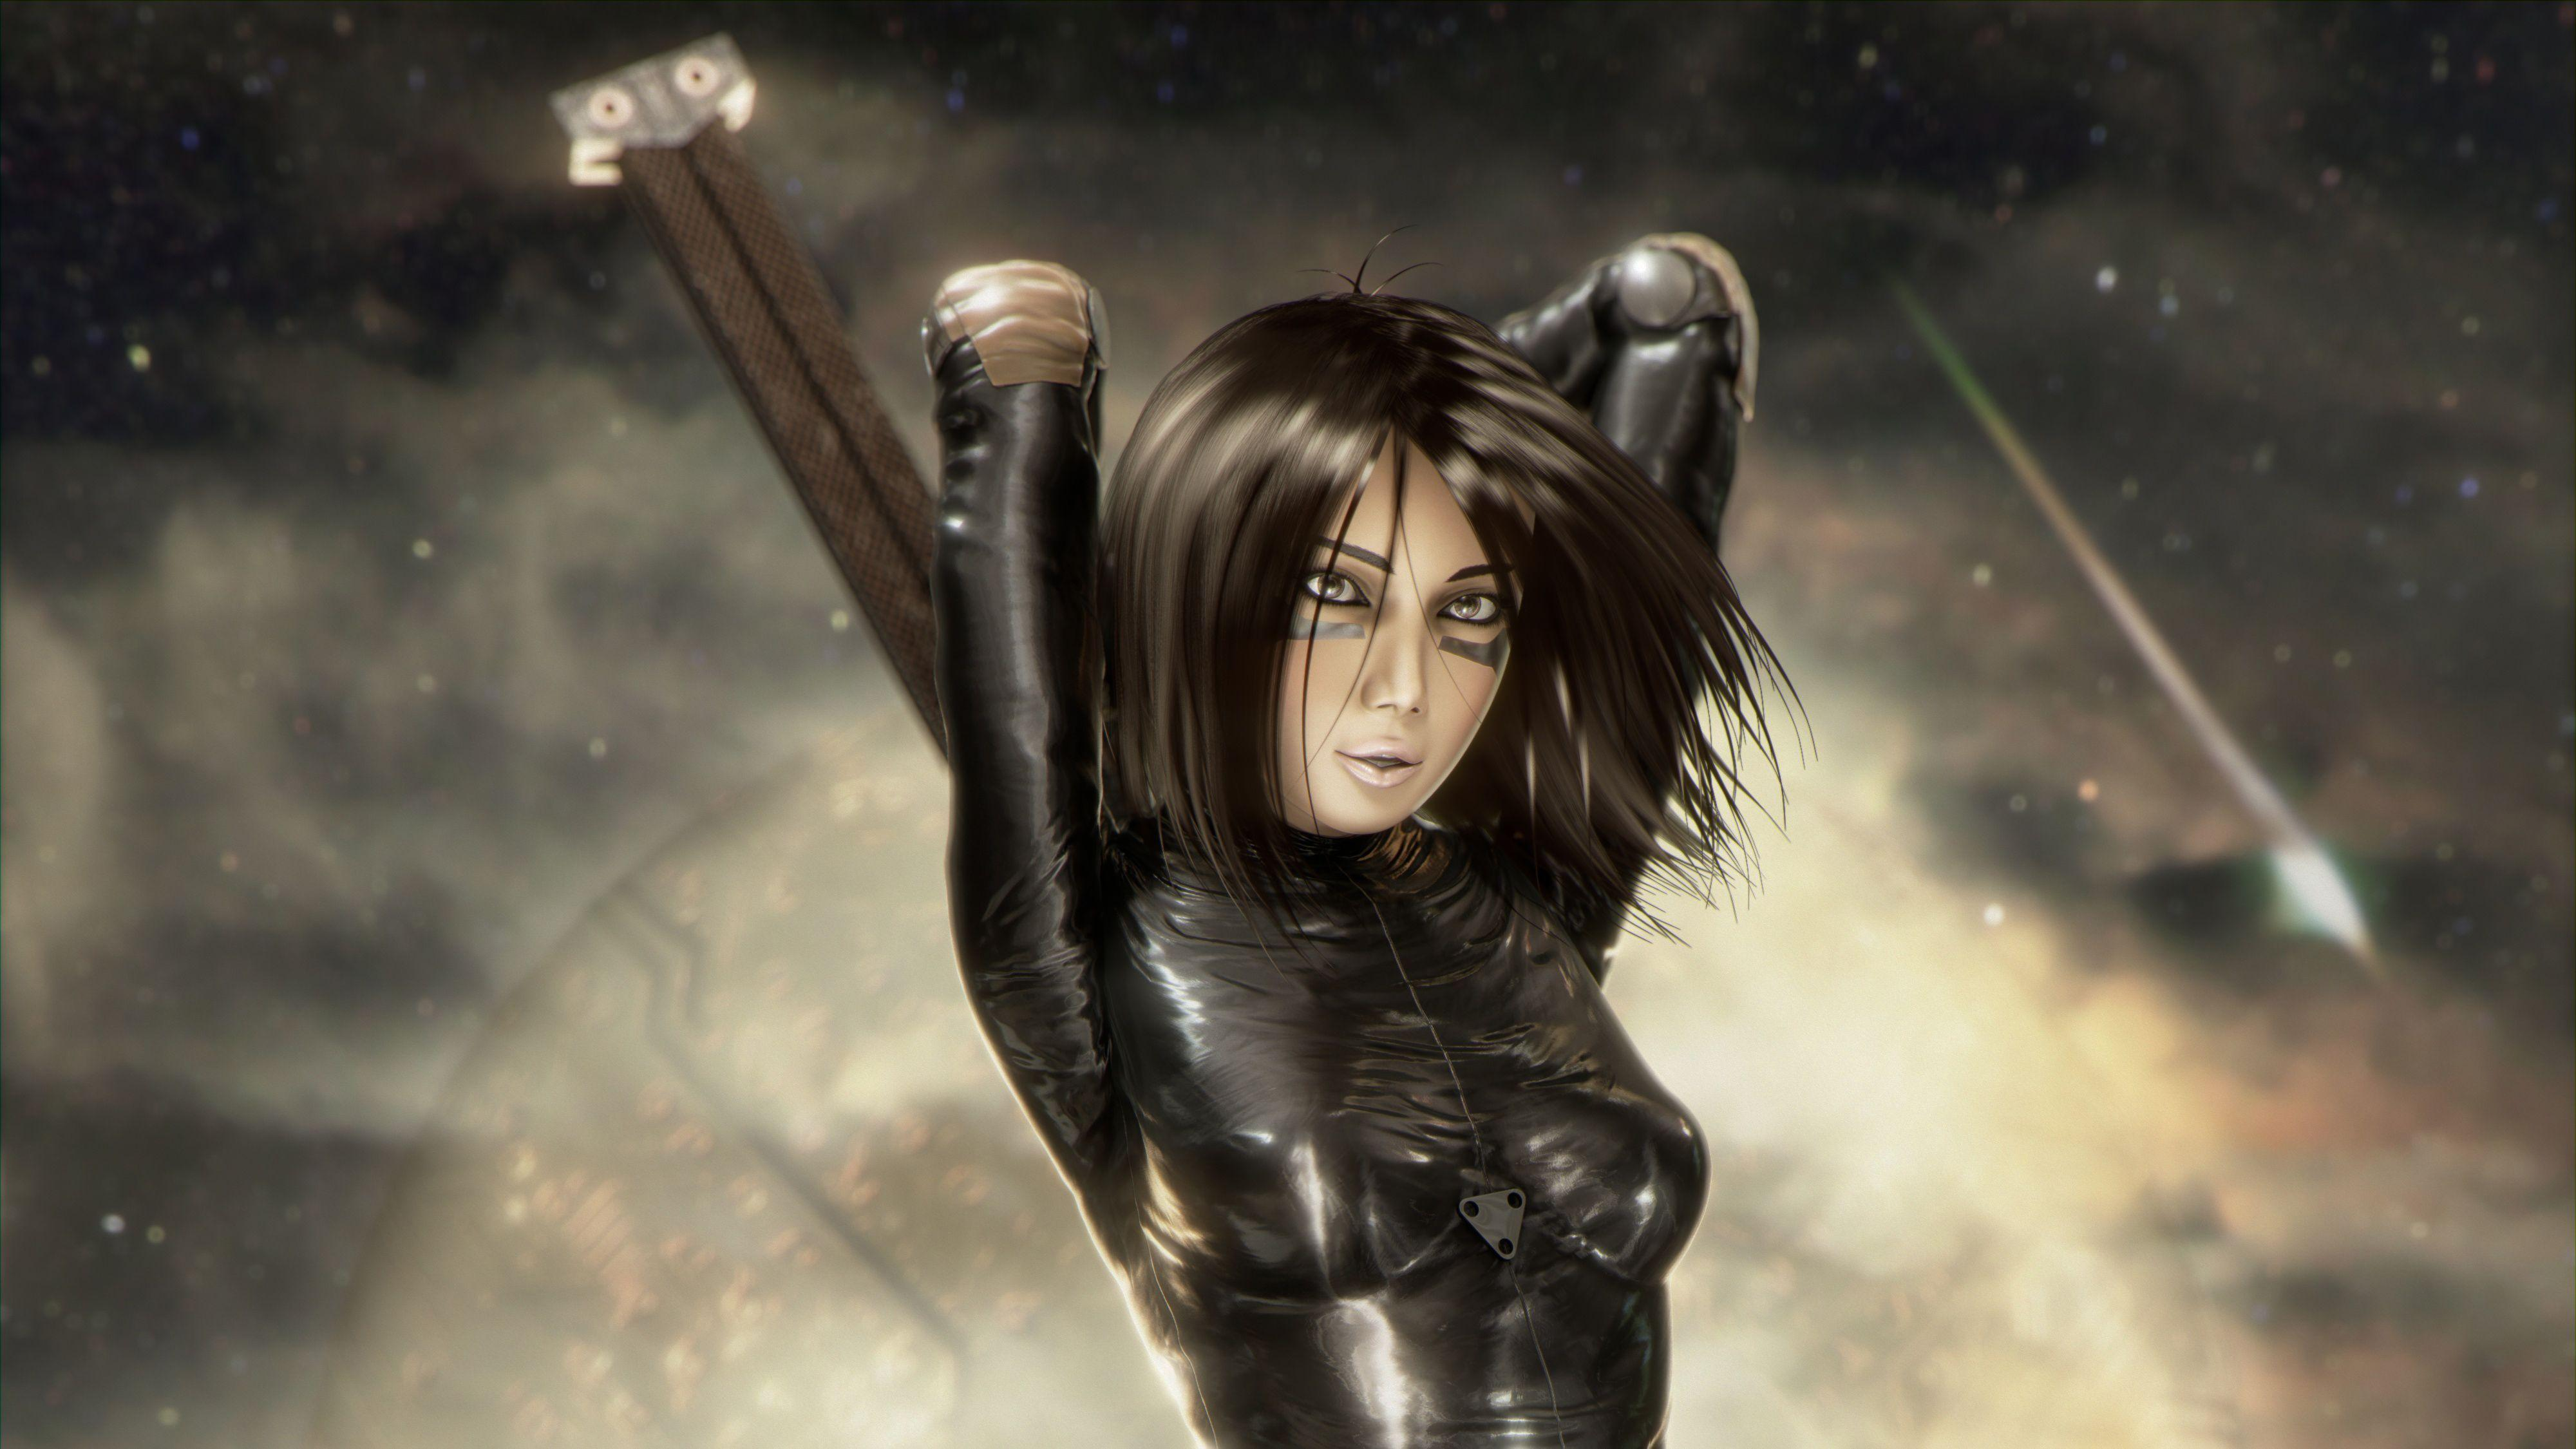 Alita Battle Angel 4k Artwork movies wallpapers, hd